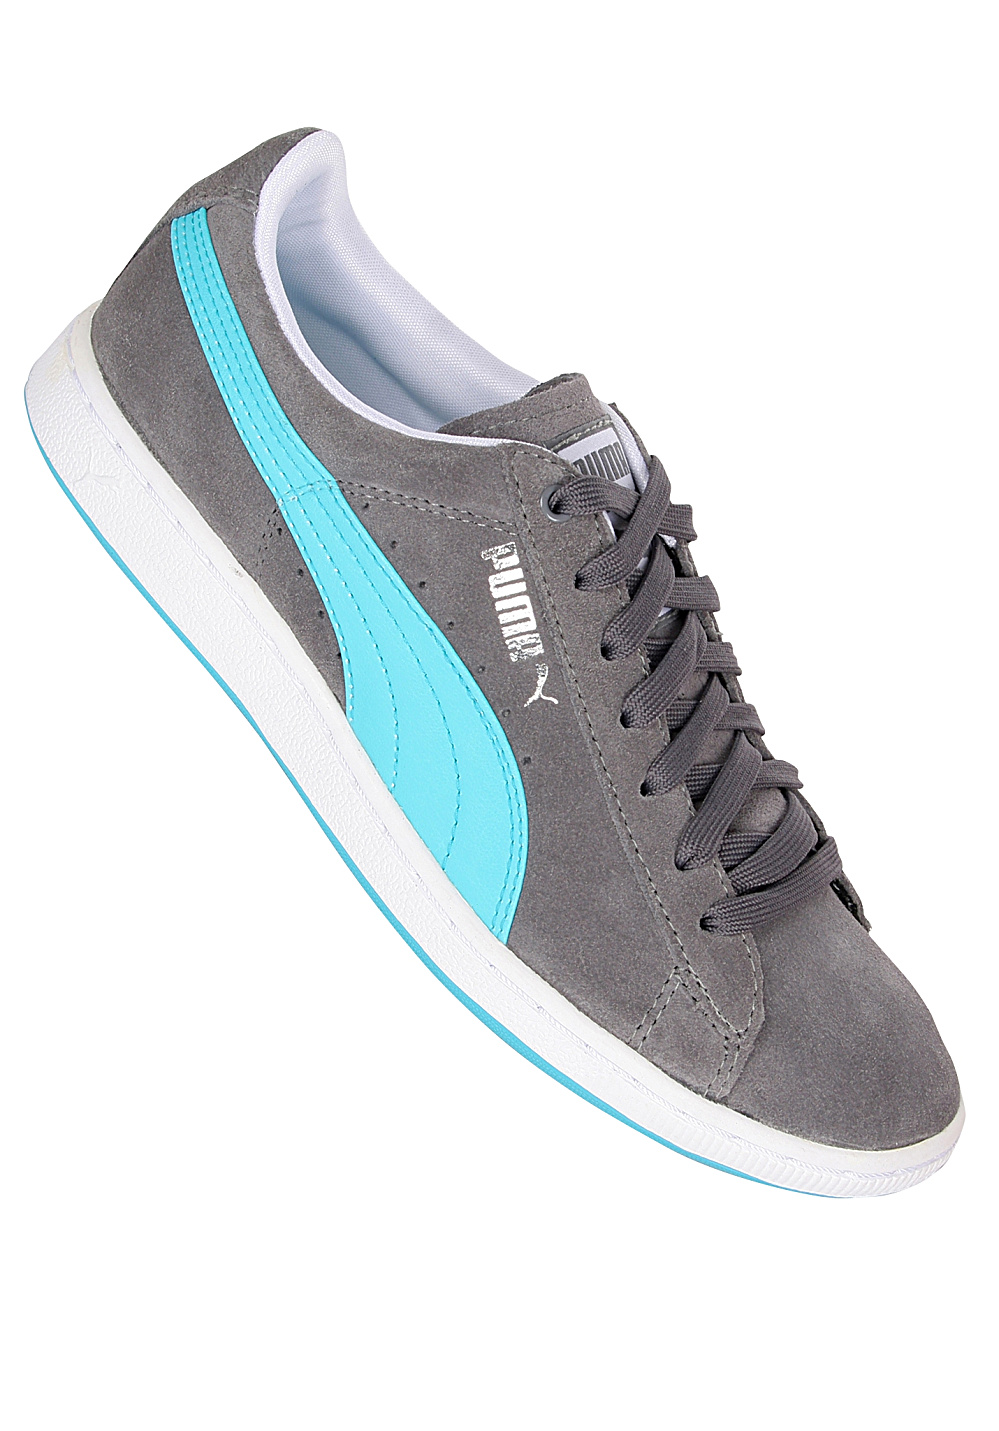 9b4000c2faa Puma Supersuede Eco - Sneakers for Women - Grey - Planet Sports